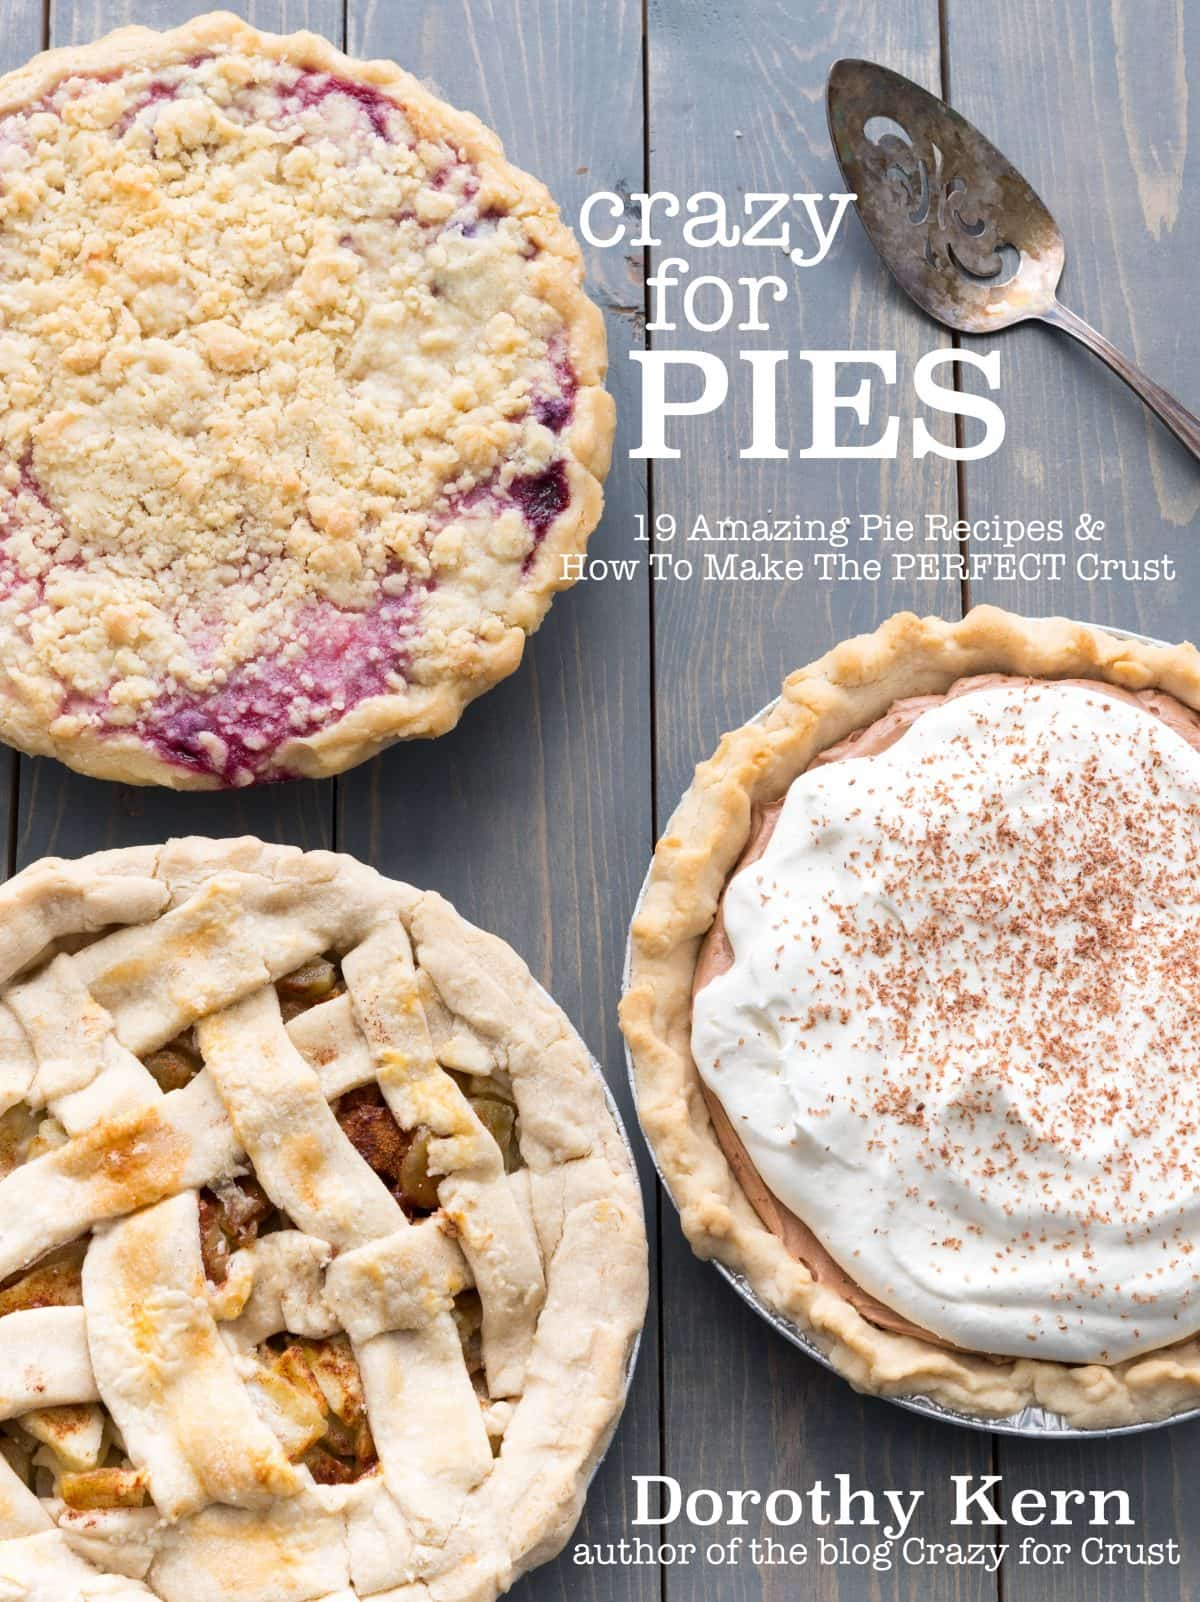 Crazy for Pies: 19 Amazing Pie Recipes & How to Make The PERFECT Crust eCookbook available NOW!